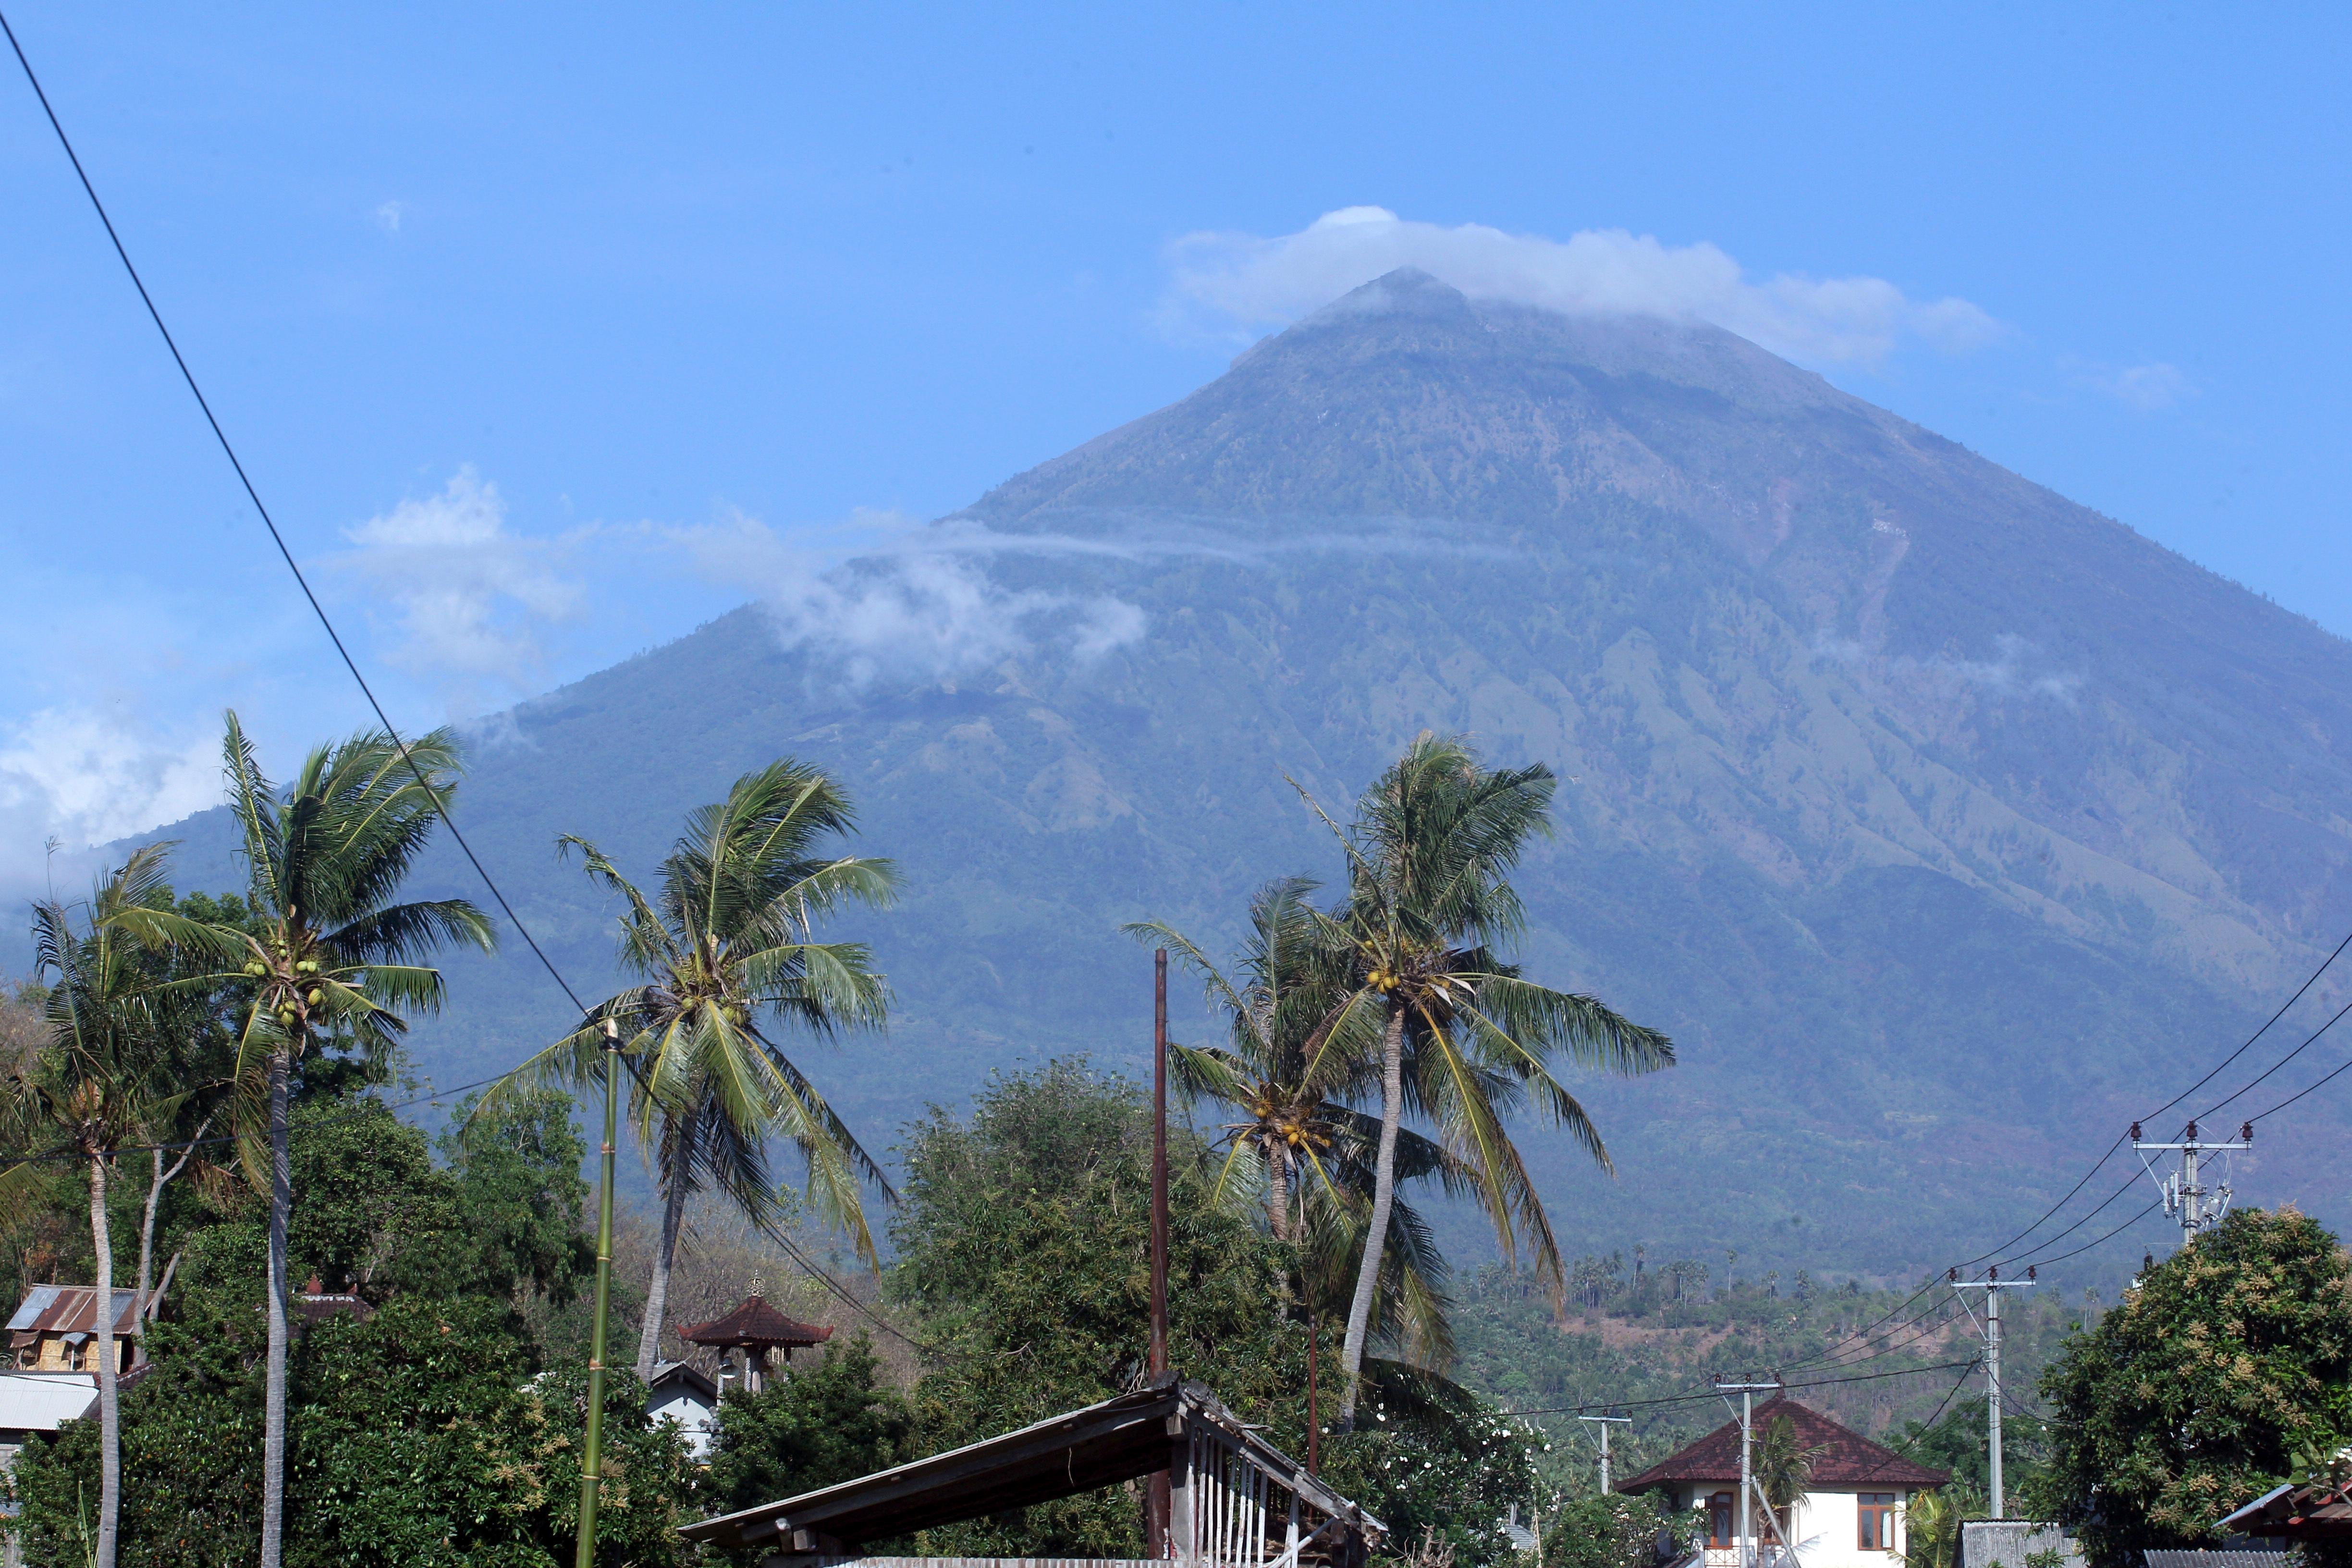 Mount Agung volcano is seen in Amed, Bali, Indonesia, Tuesday, Sept. 26, 2017. An increasing frequency of tremors from the volcano indicates magma is continuing to move toward the surface and an eruption is possible, a disaster agency official said Tuesday. Tourists are cutting short their stay to the island, where an eruption would force the airport to close and strand thousands. (AP Photo/Firdia Lisnawati)